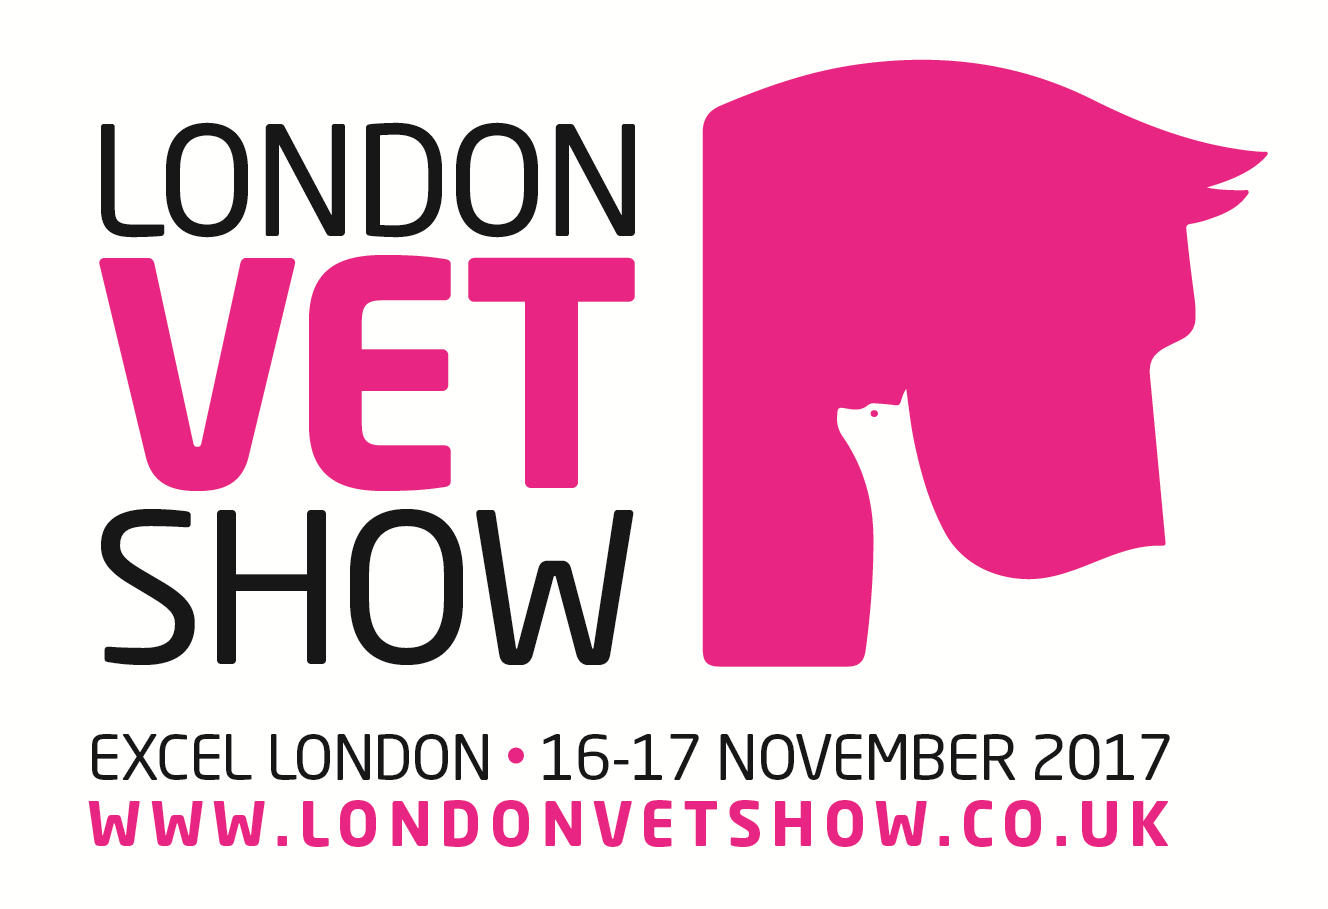 Visit us at London Vet Show on Stand B12